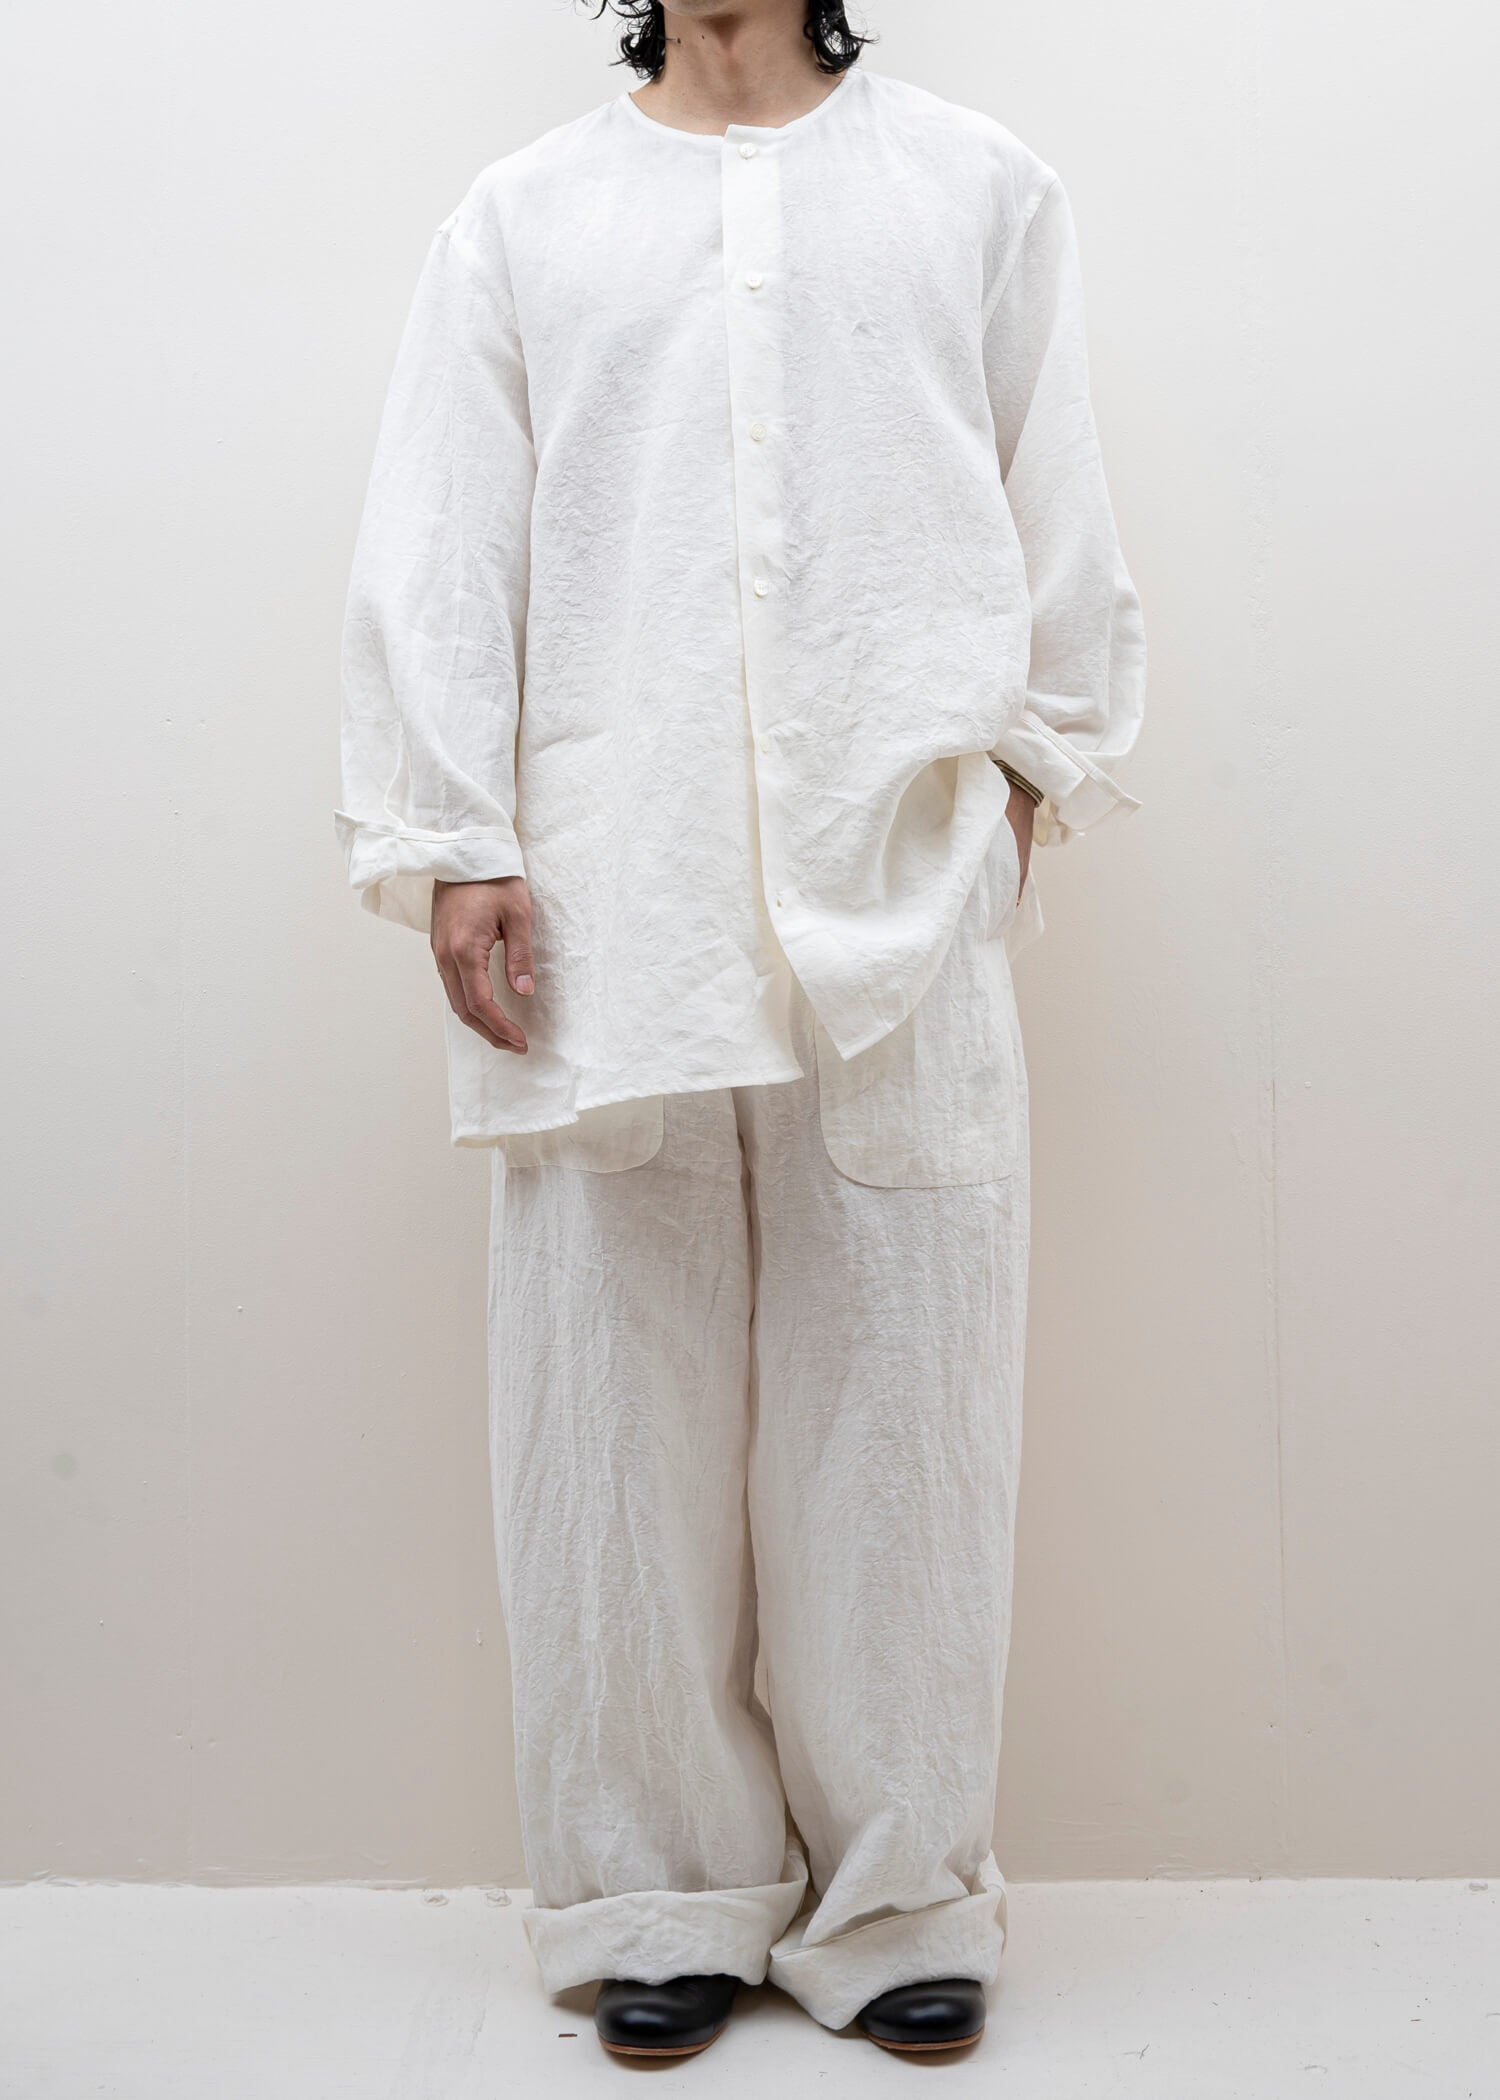 HED MAYNER / BELTED PANT / WHITE LINEN